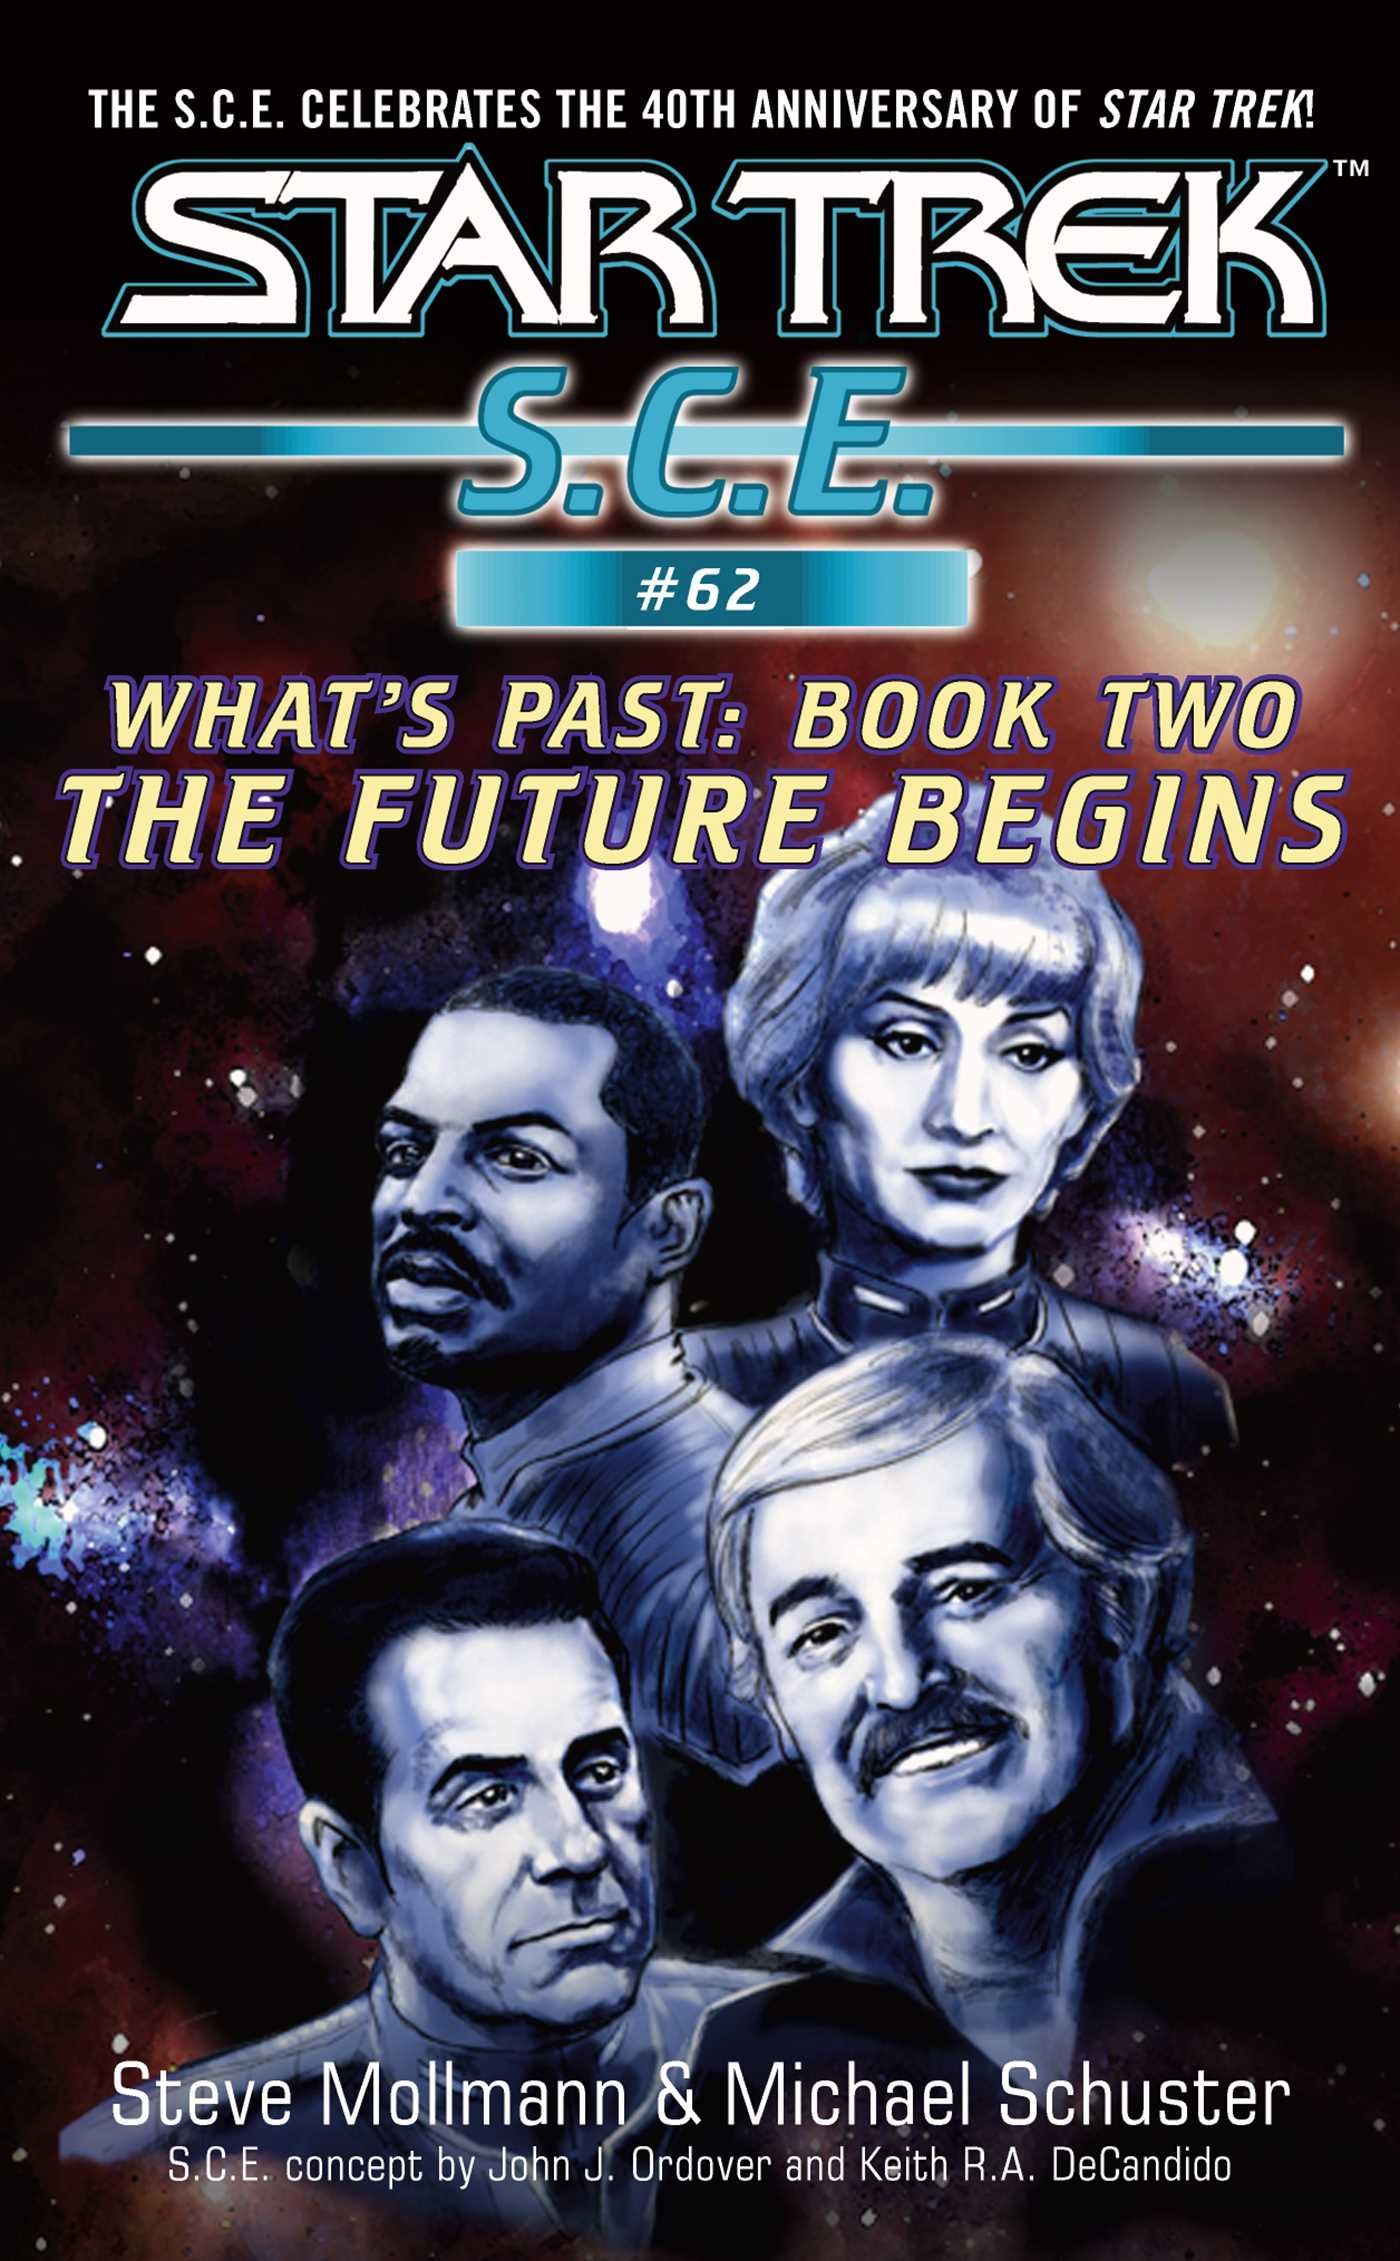 Star trek future begins 9781416520467 hr